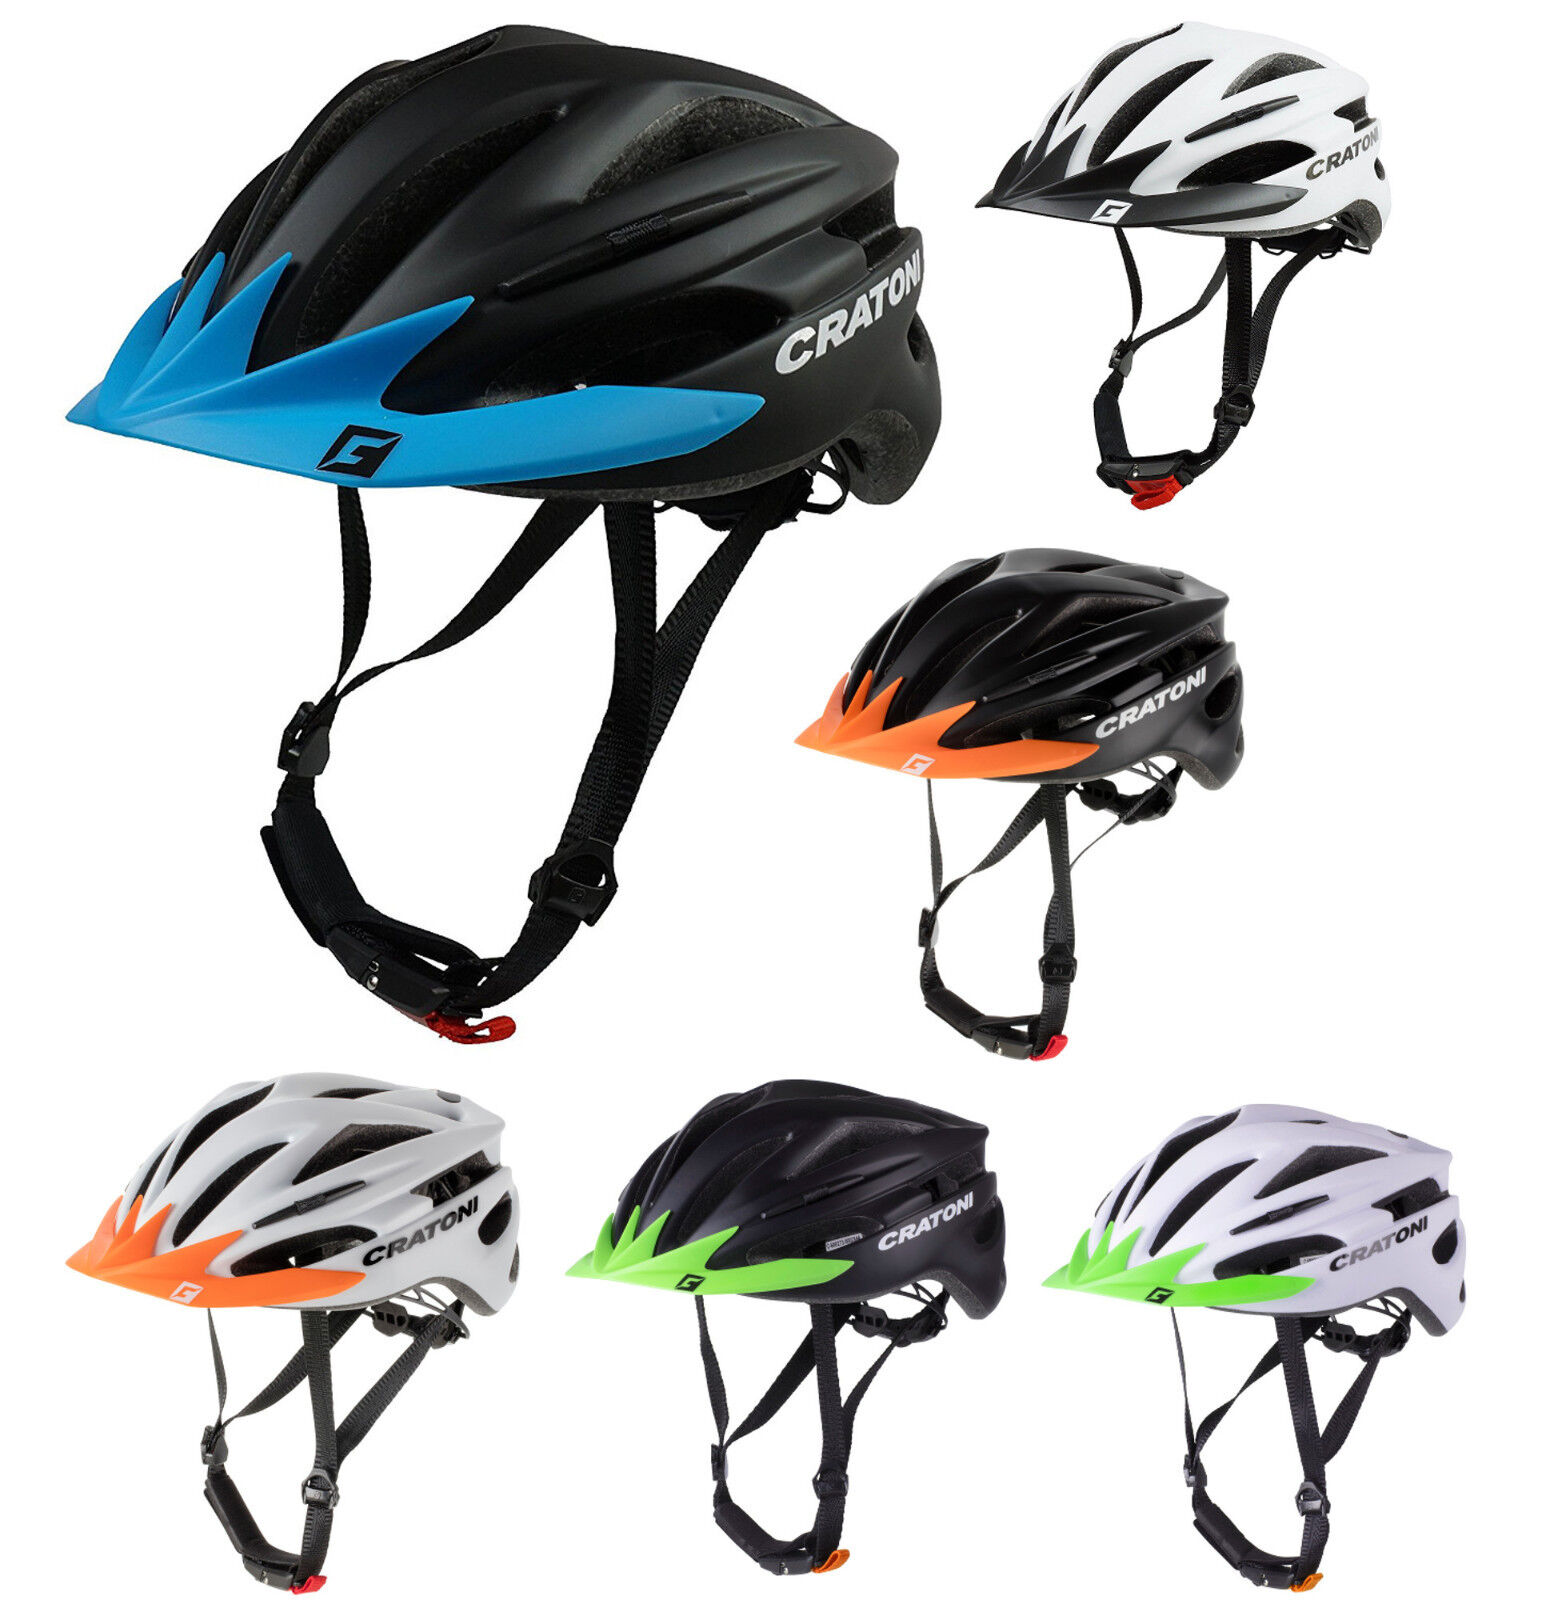 Cratoni Pacer Special Model Touring Helmet Bicycle All-Round Bike Inliner